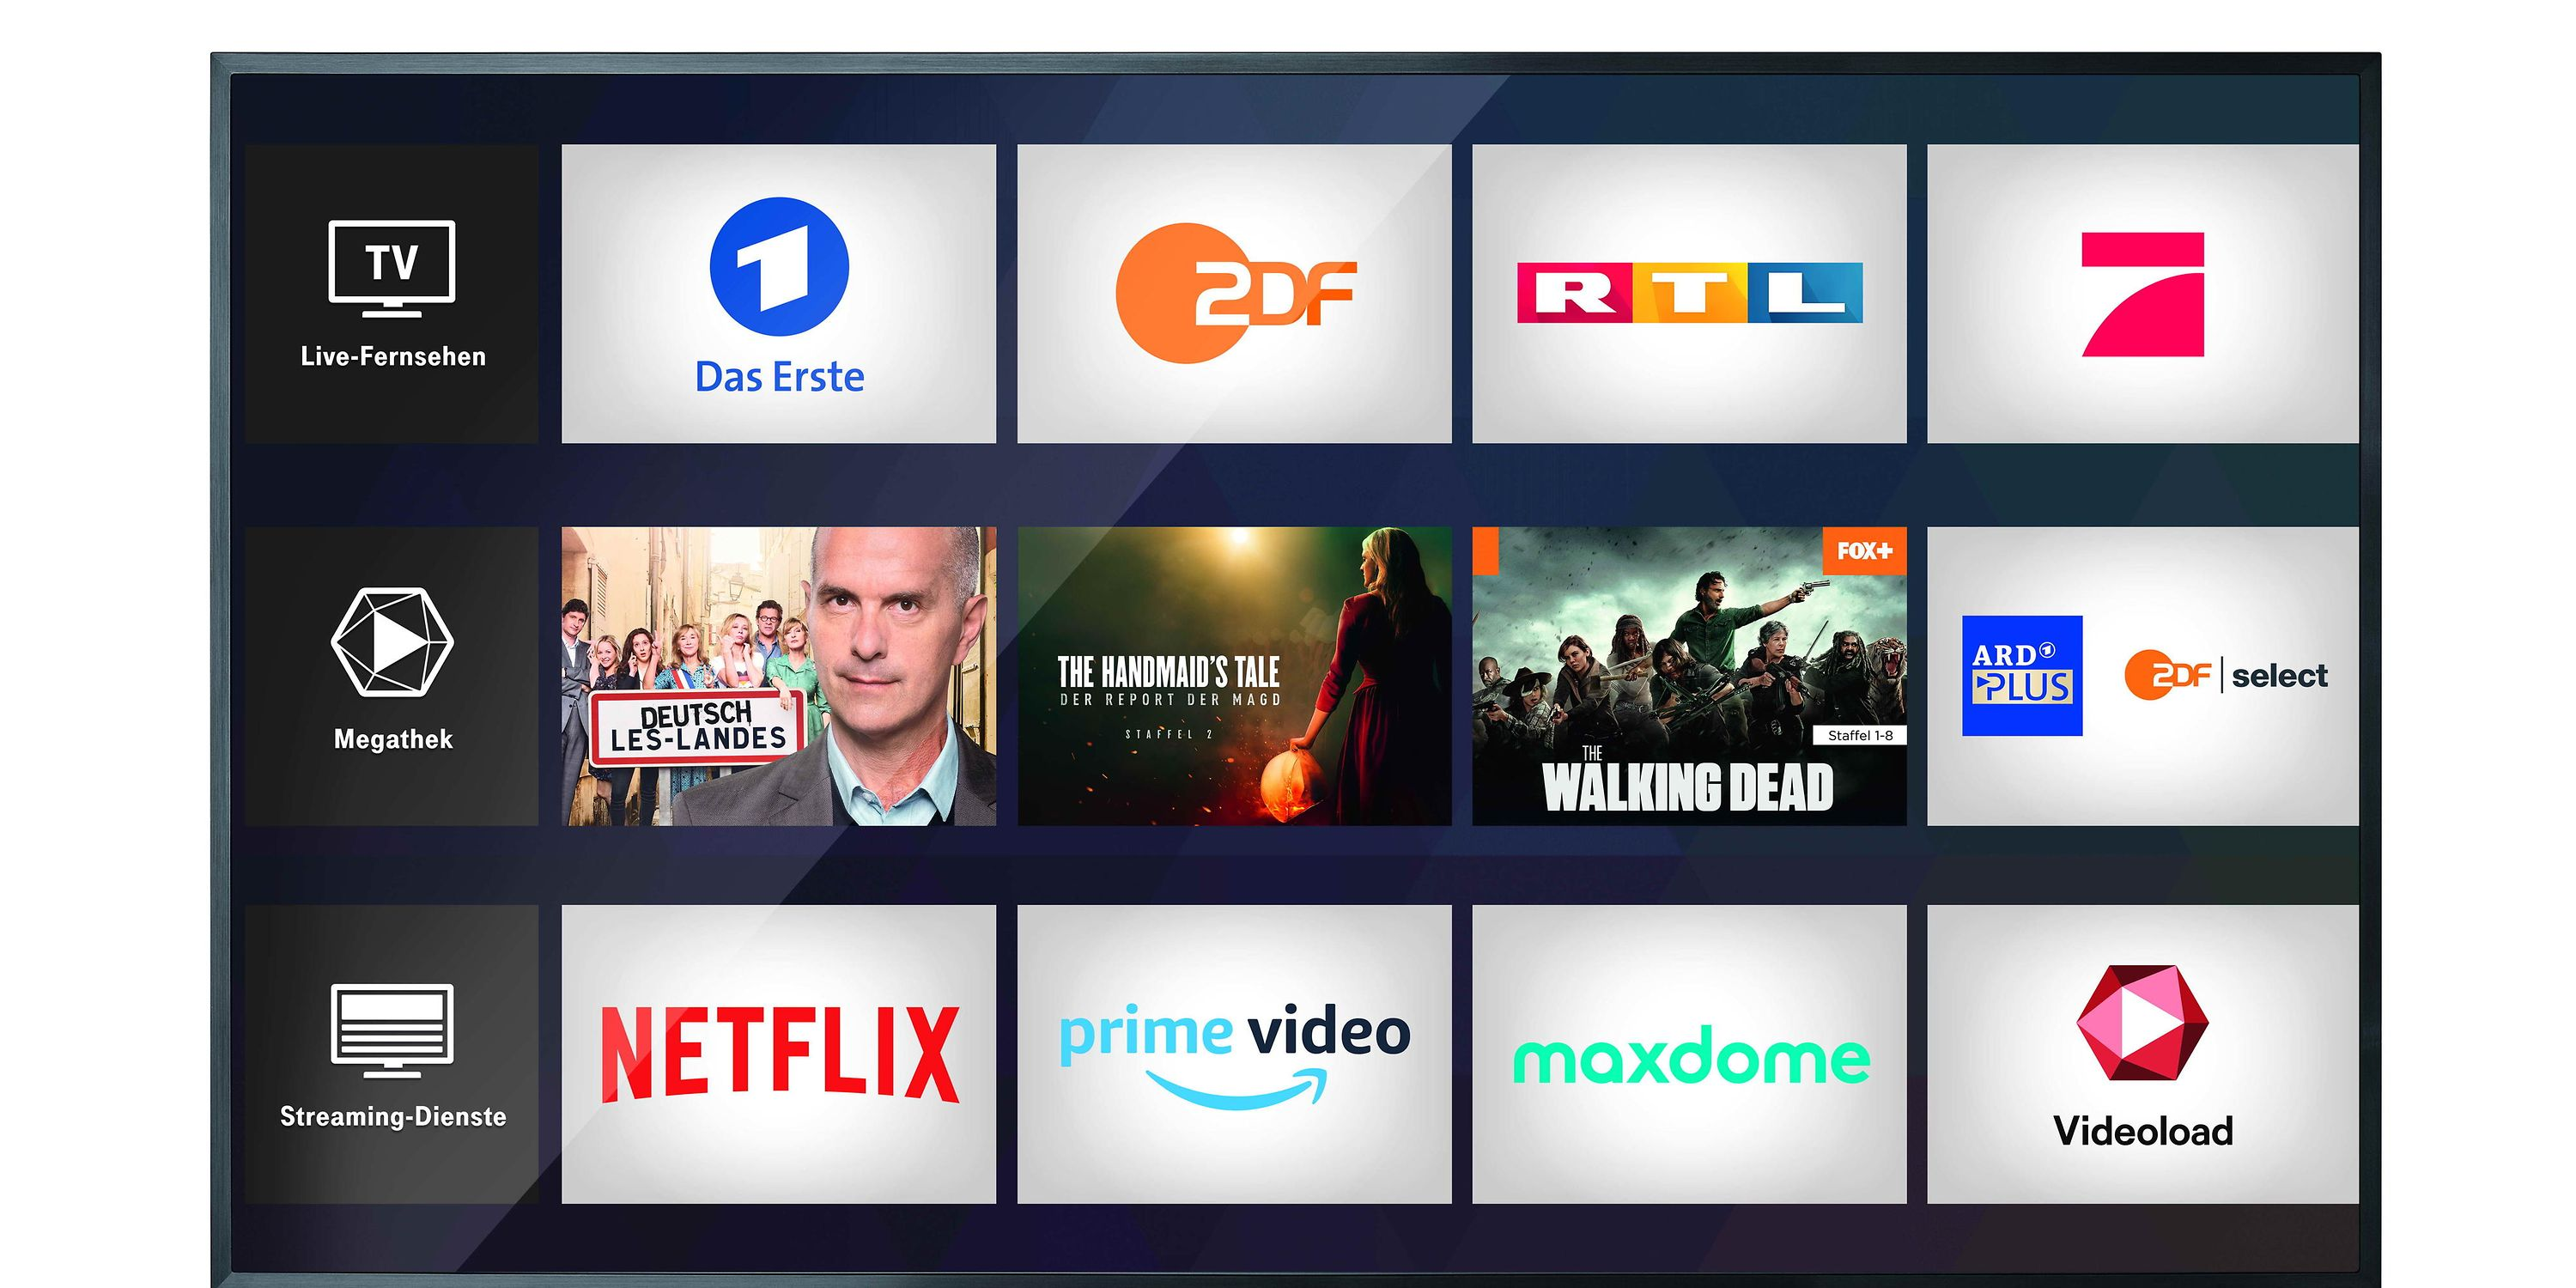 The best TV from Germany: ARD Plus and ZDF select launched with MagentaTV